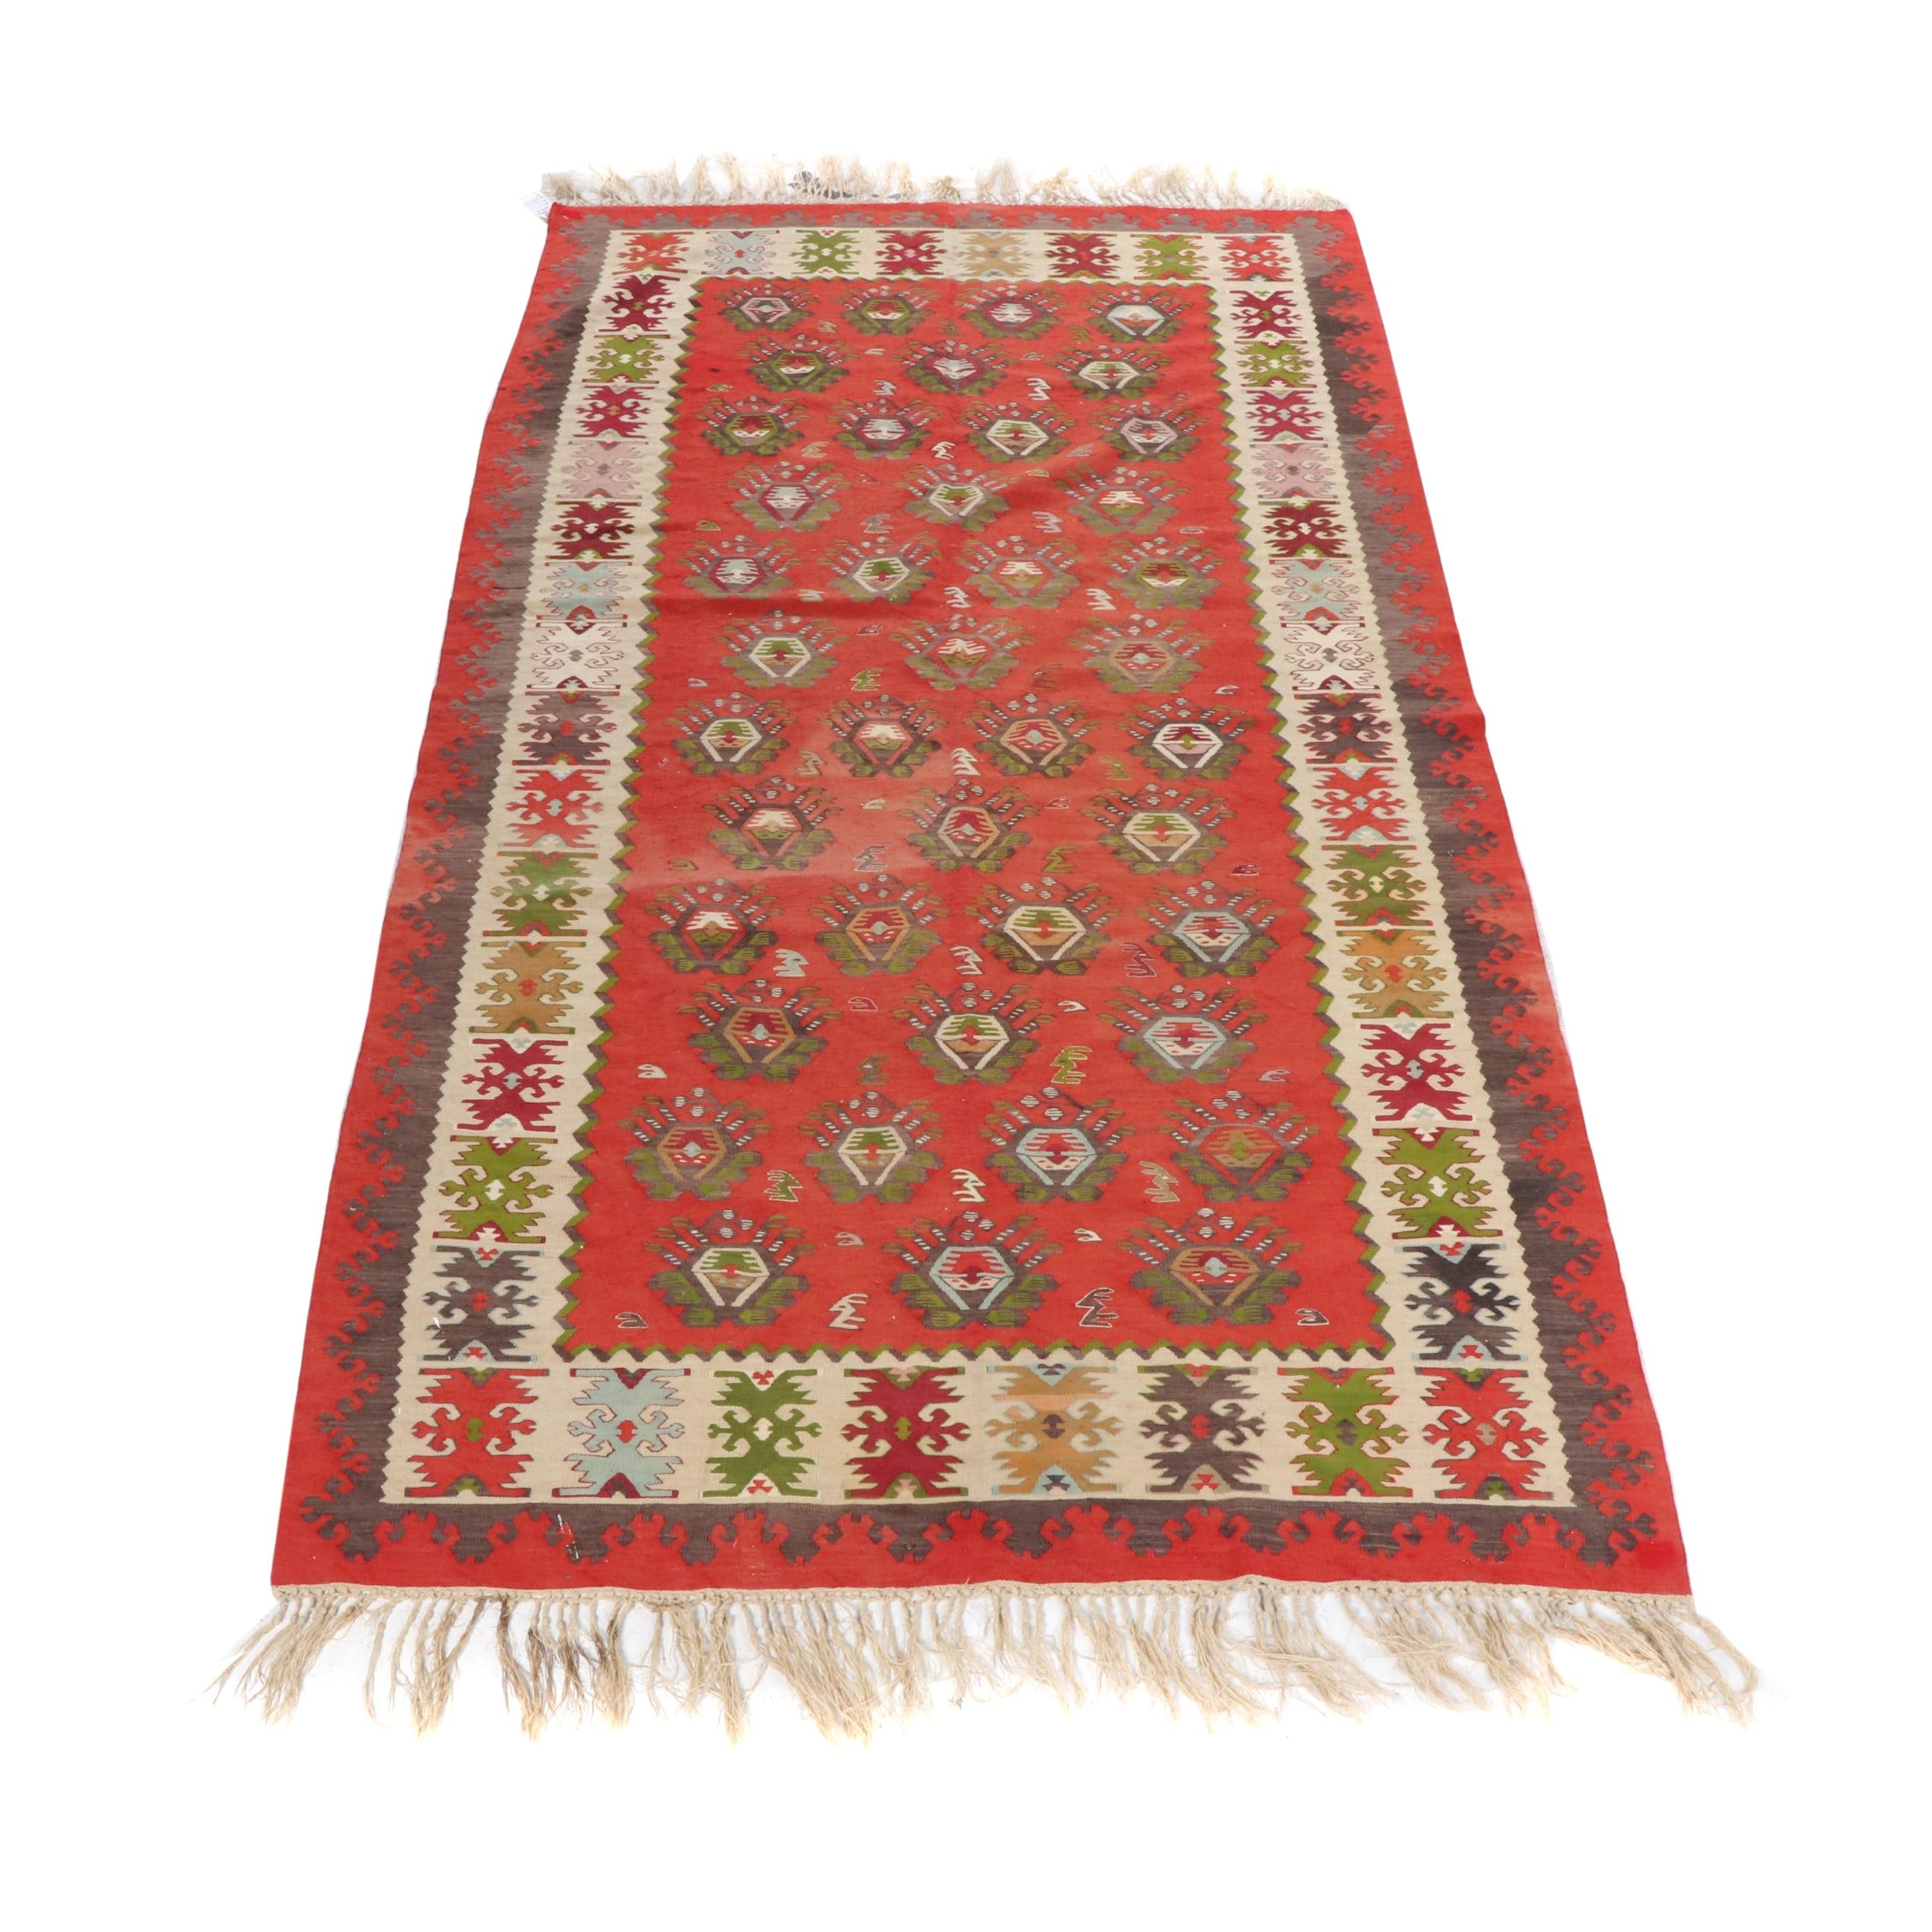 Handwoven Turkish Wool Kilim Rug